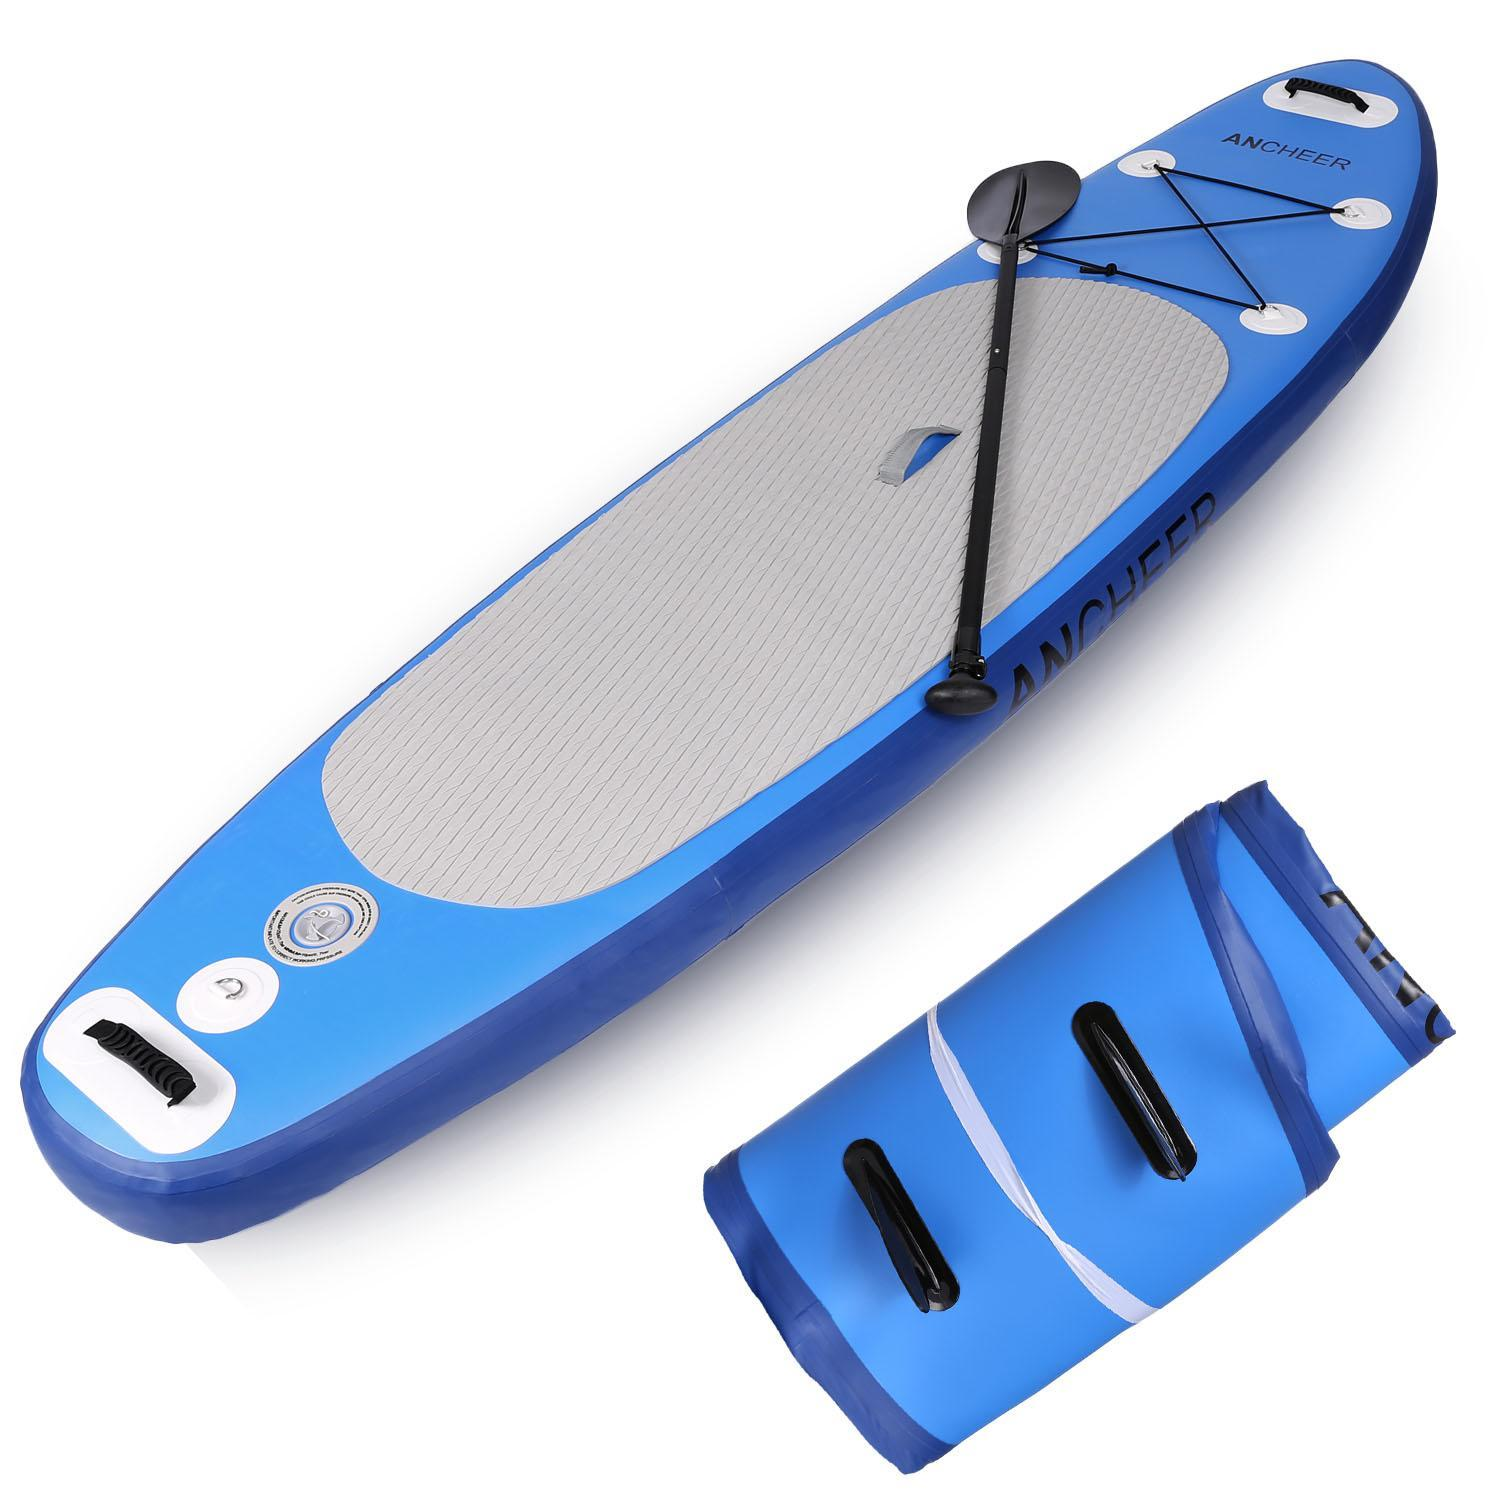 """Clearance&Sale!!! Hifashion 10' 6"""" Inflatable Stand Up Paddle Board SUP w/ Adjustable Paddle Travel Backpack,Blue Sup Inflatable Paddle Boards"""